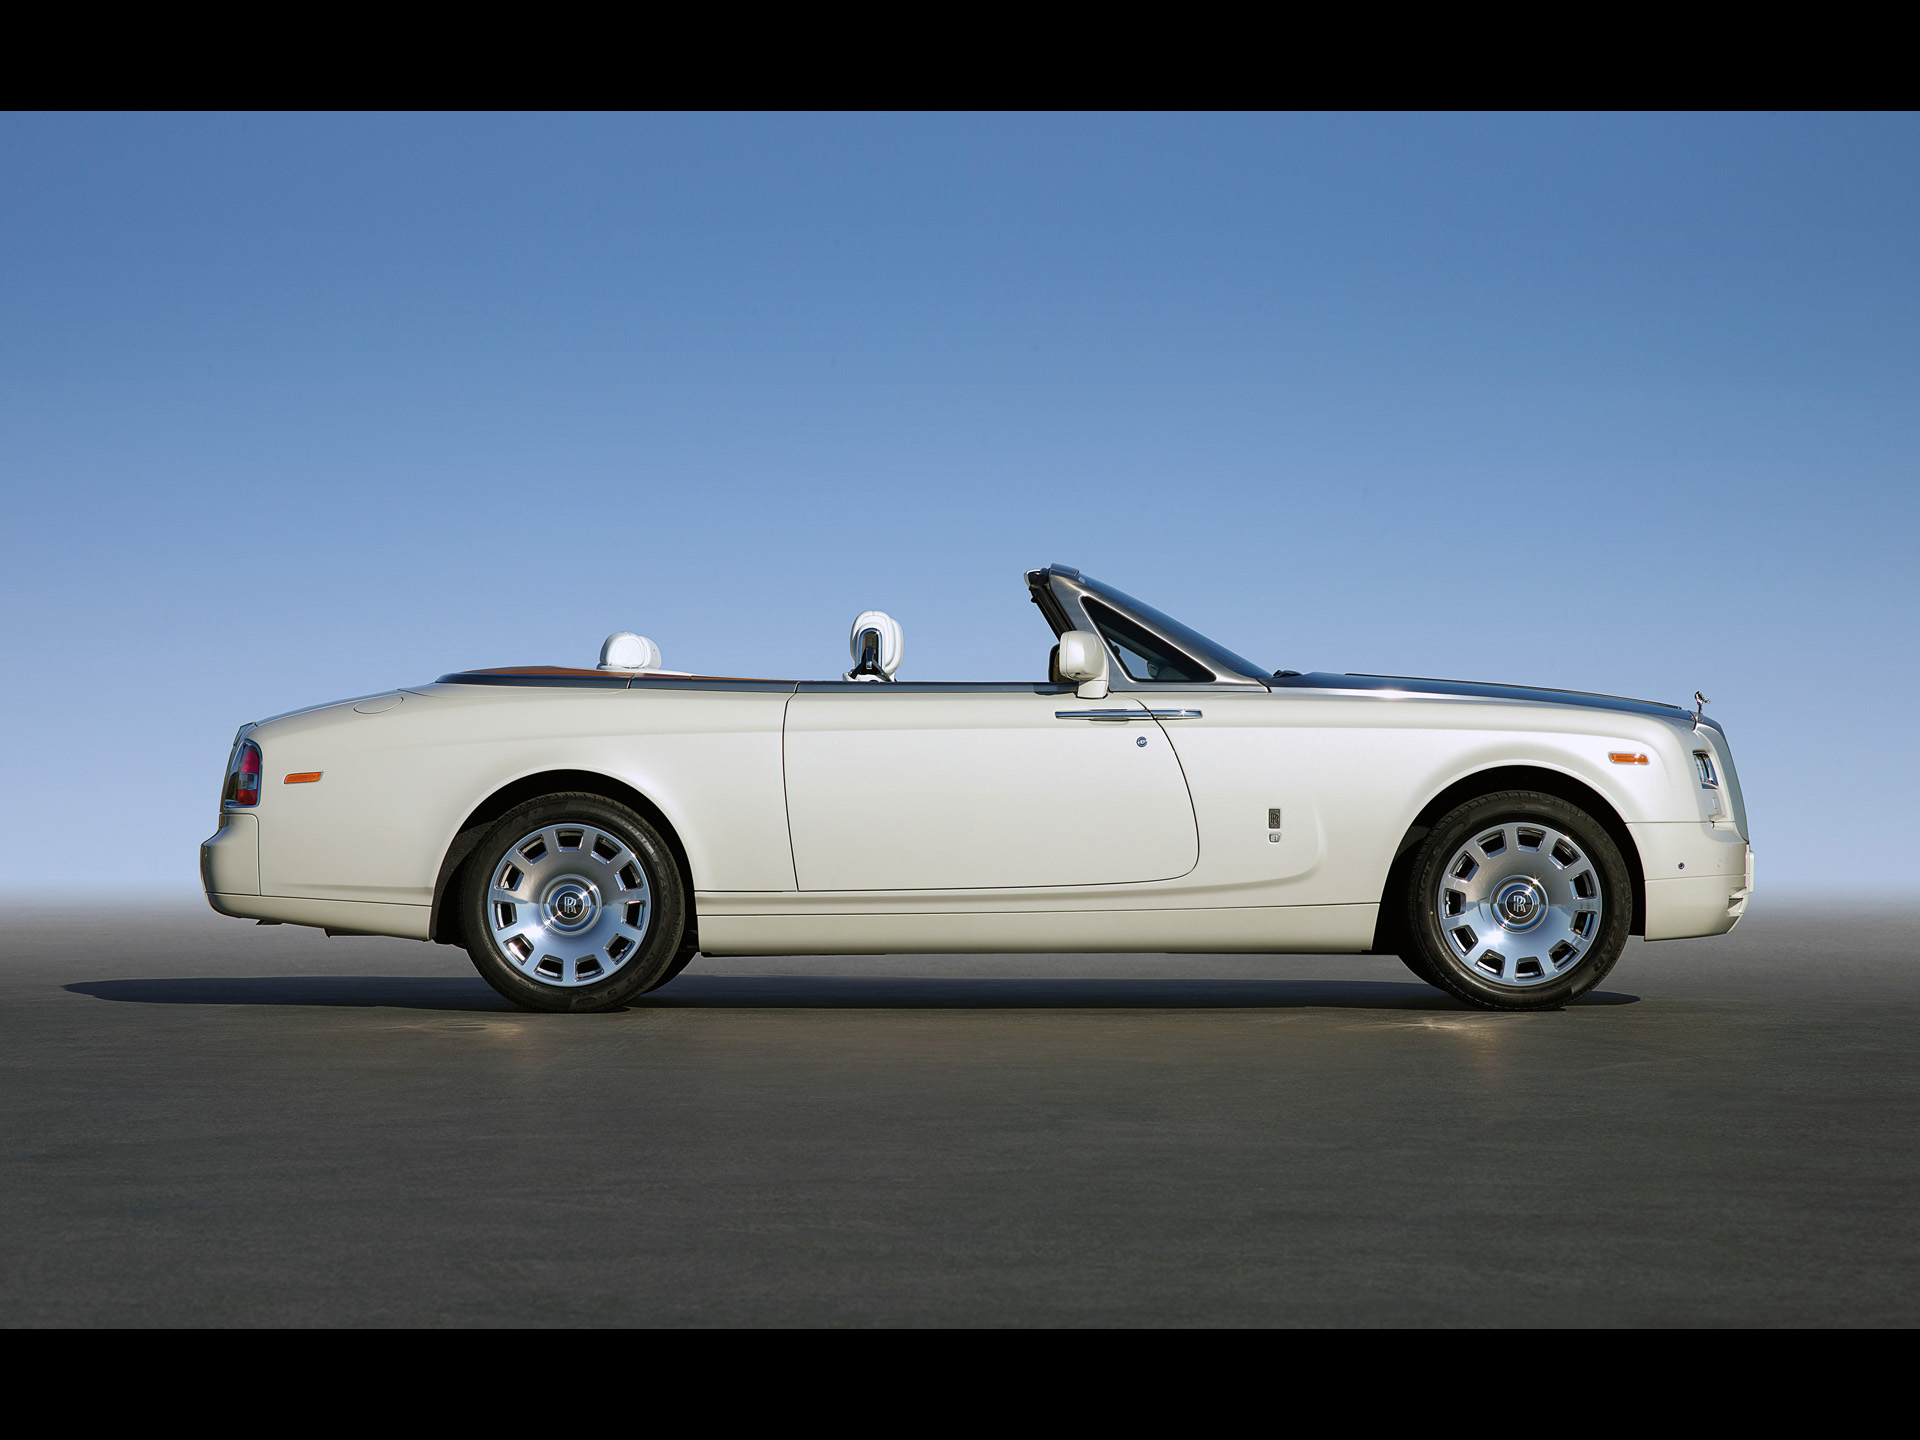 2012 Rolls royce Phantom Drophead Coupe #11